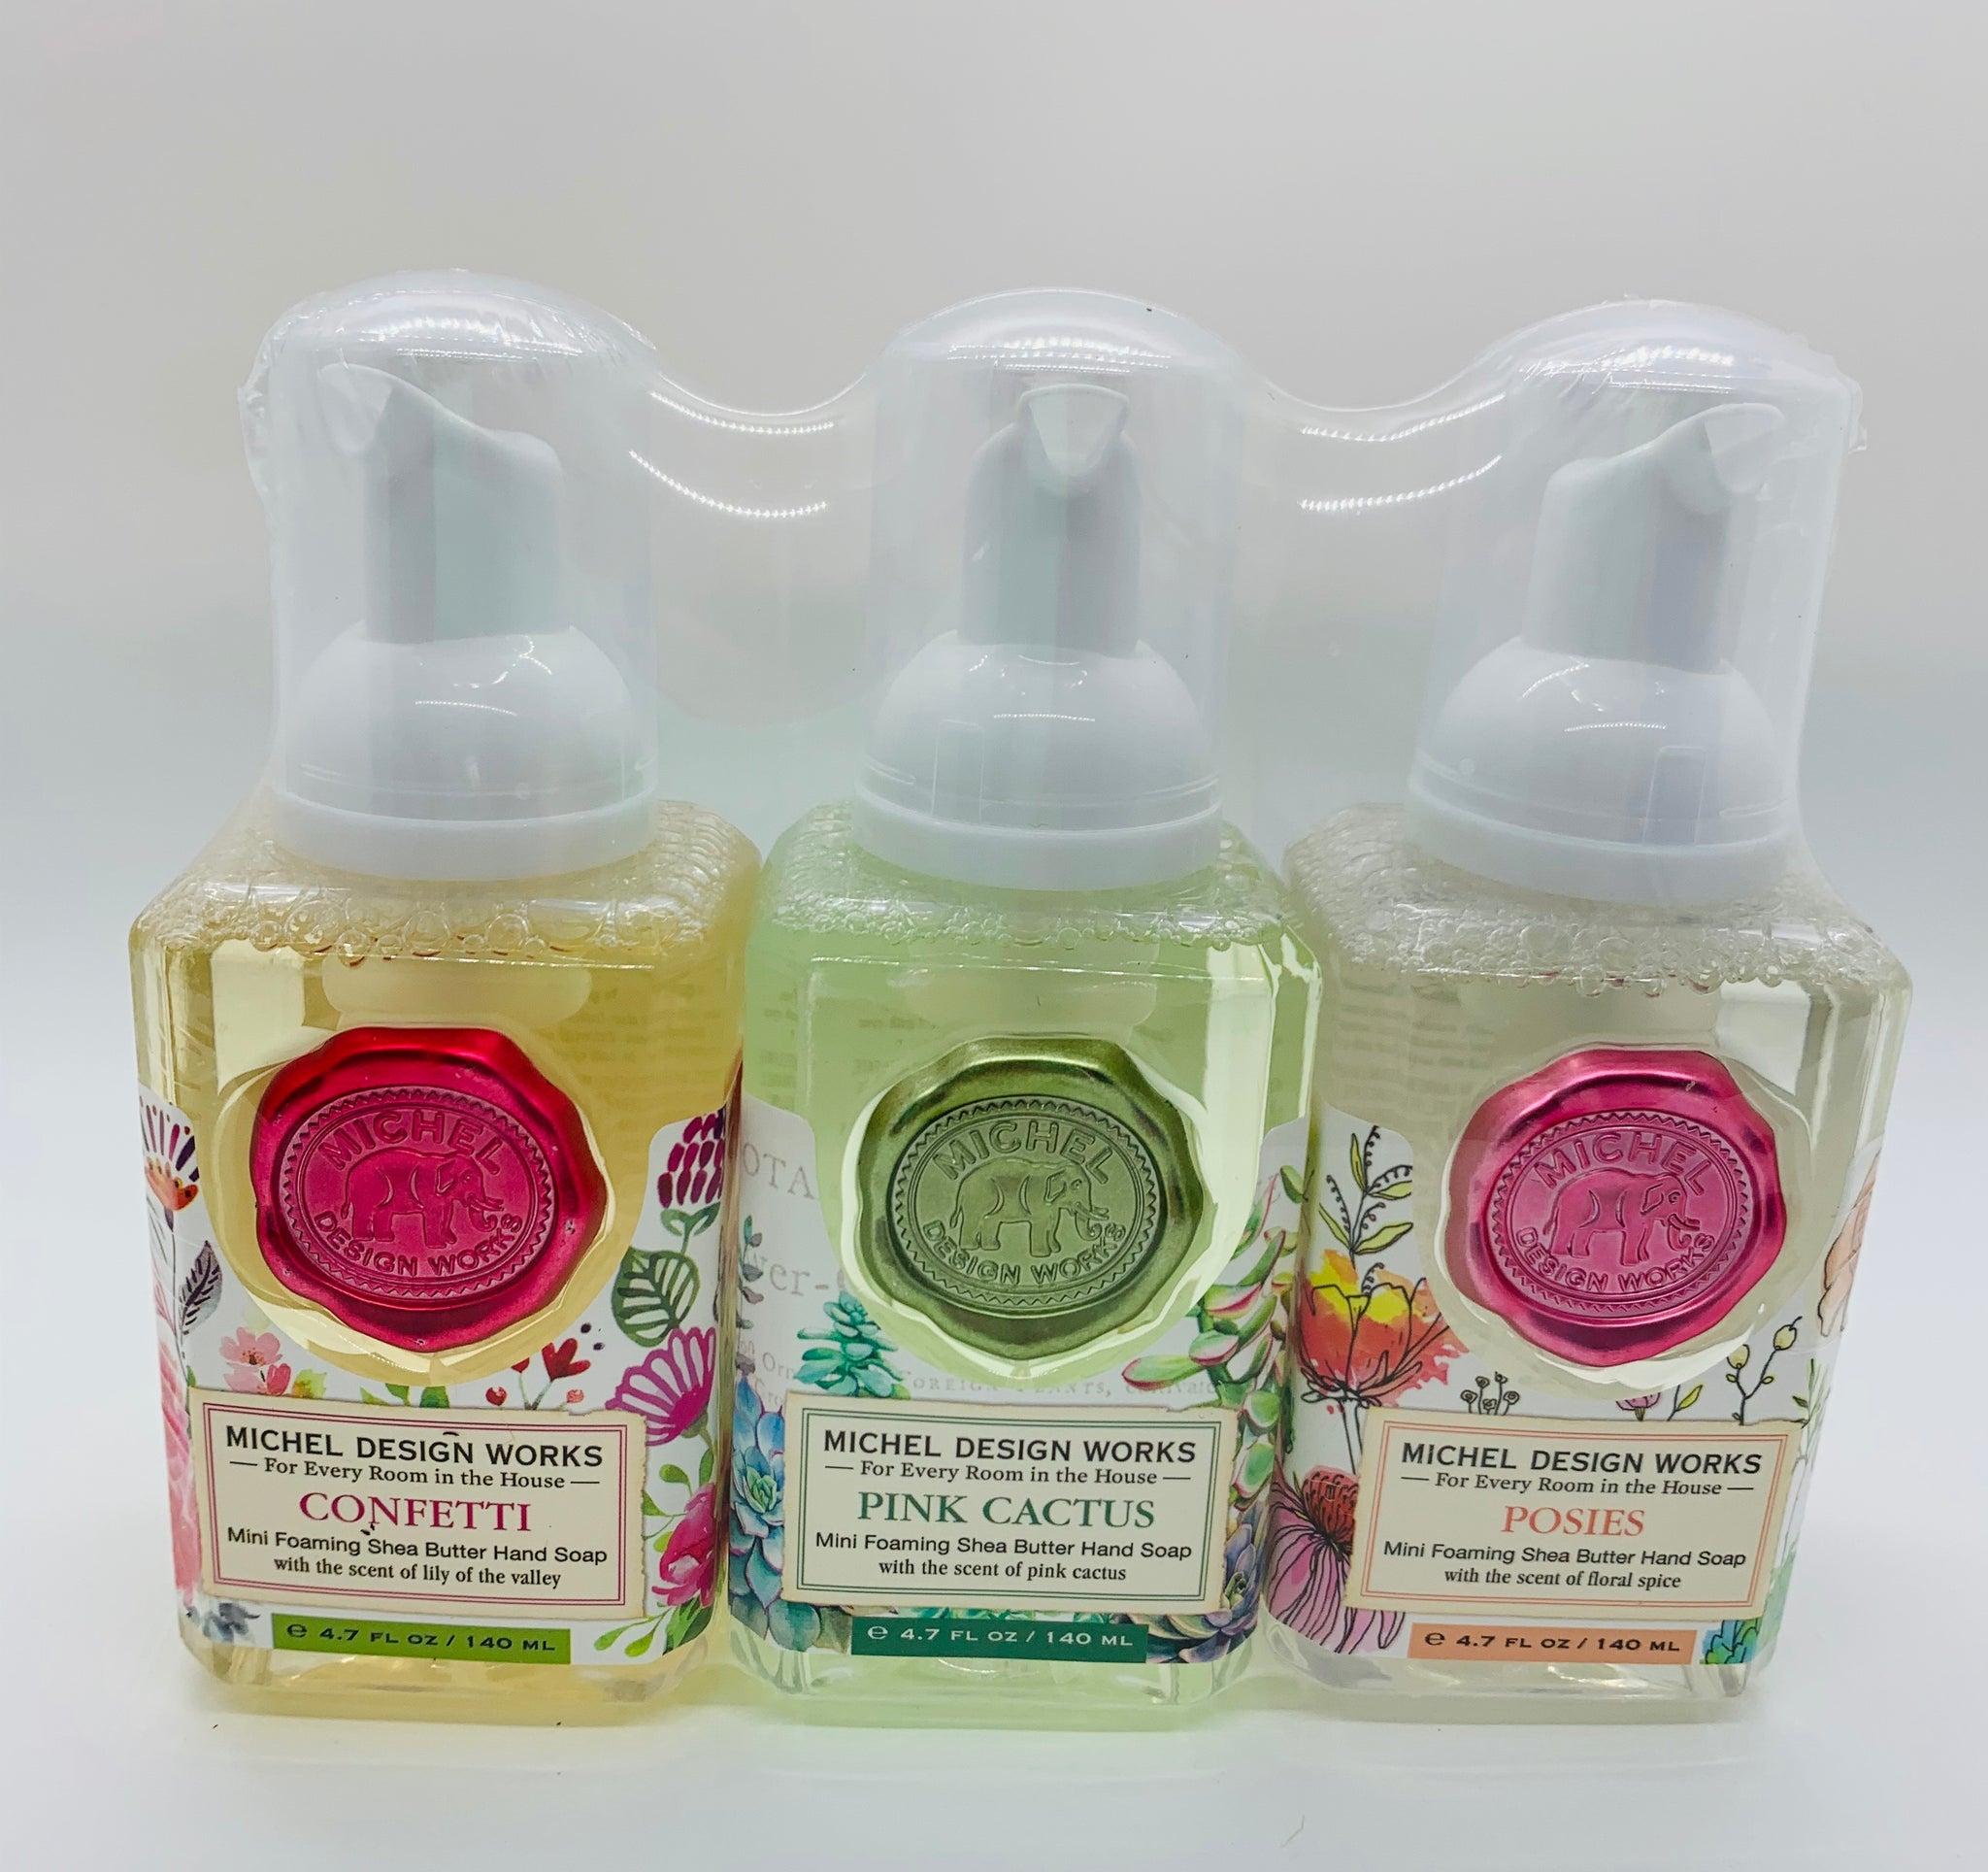 Mini Foaming Hand Soap Set: Confetti, Pink Cactus, Posies